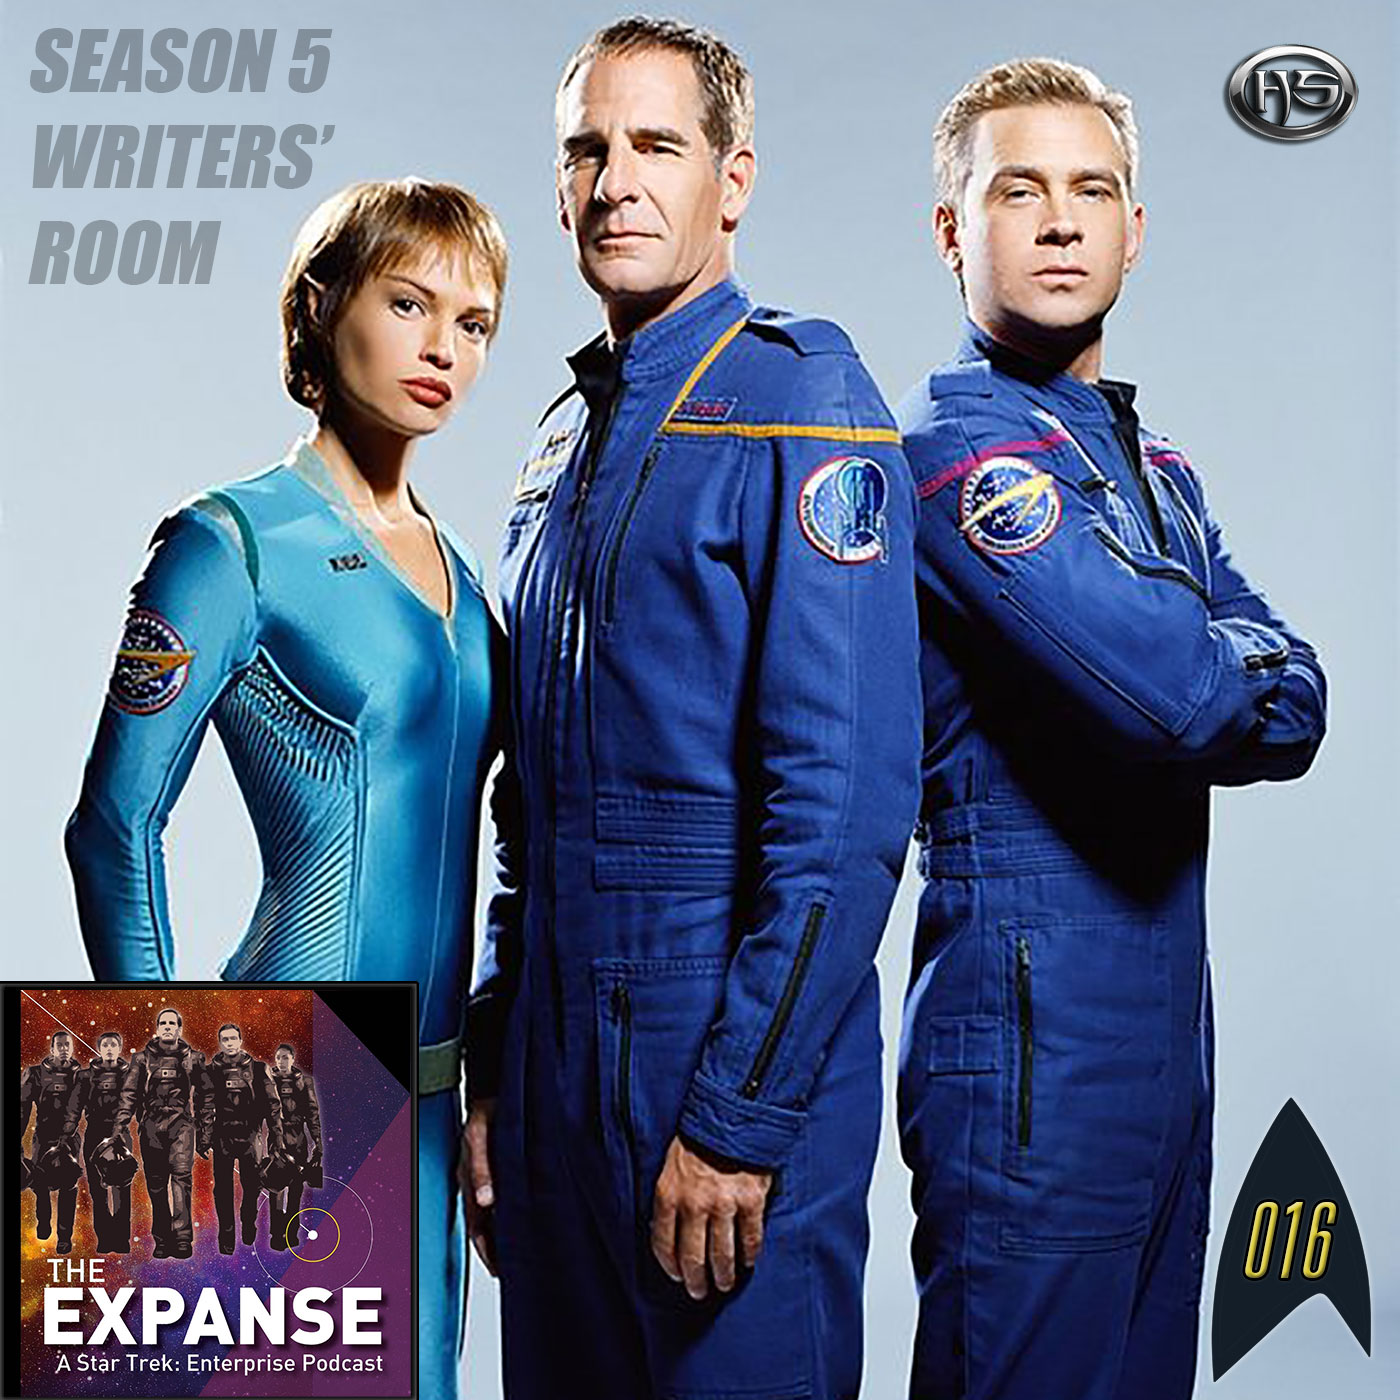 The Expanse Episode 16